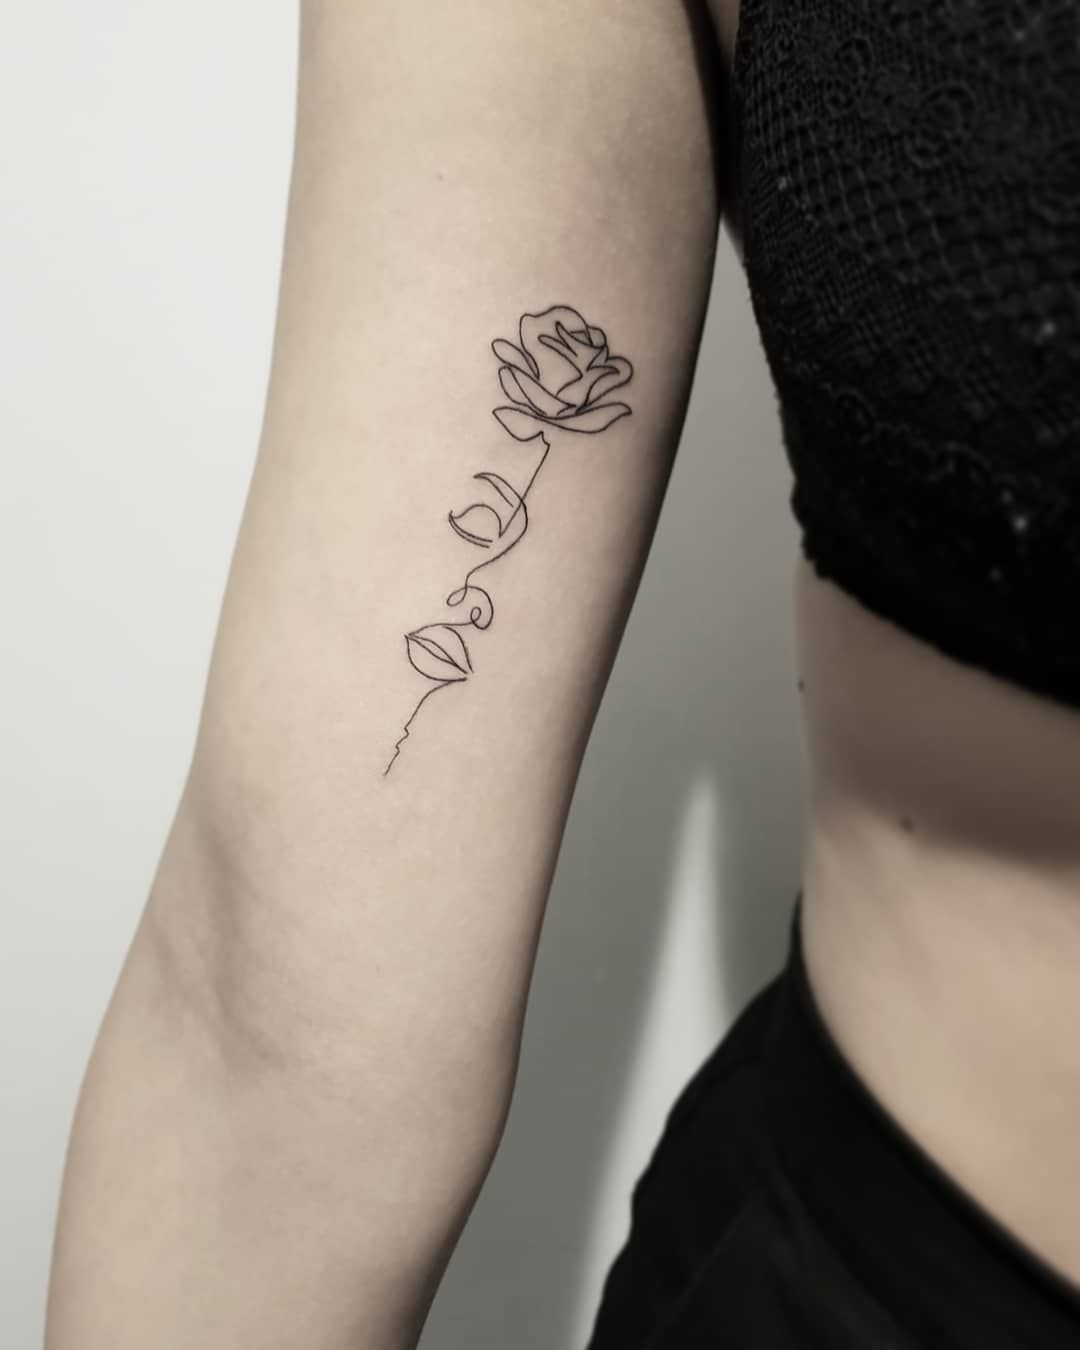 One Line Tattoo meaning – Find Your Meaning With a Best Small Tattoo